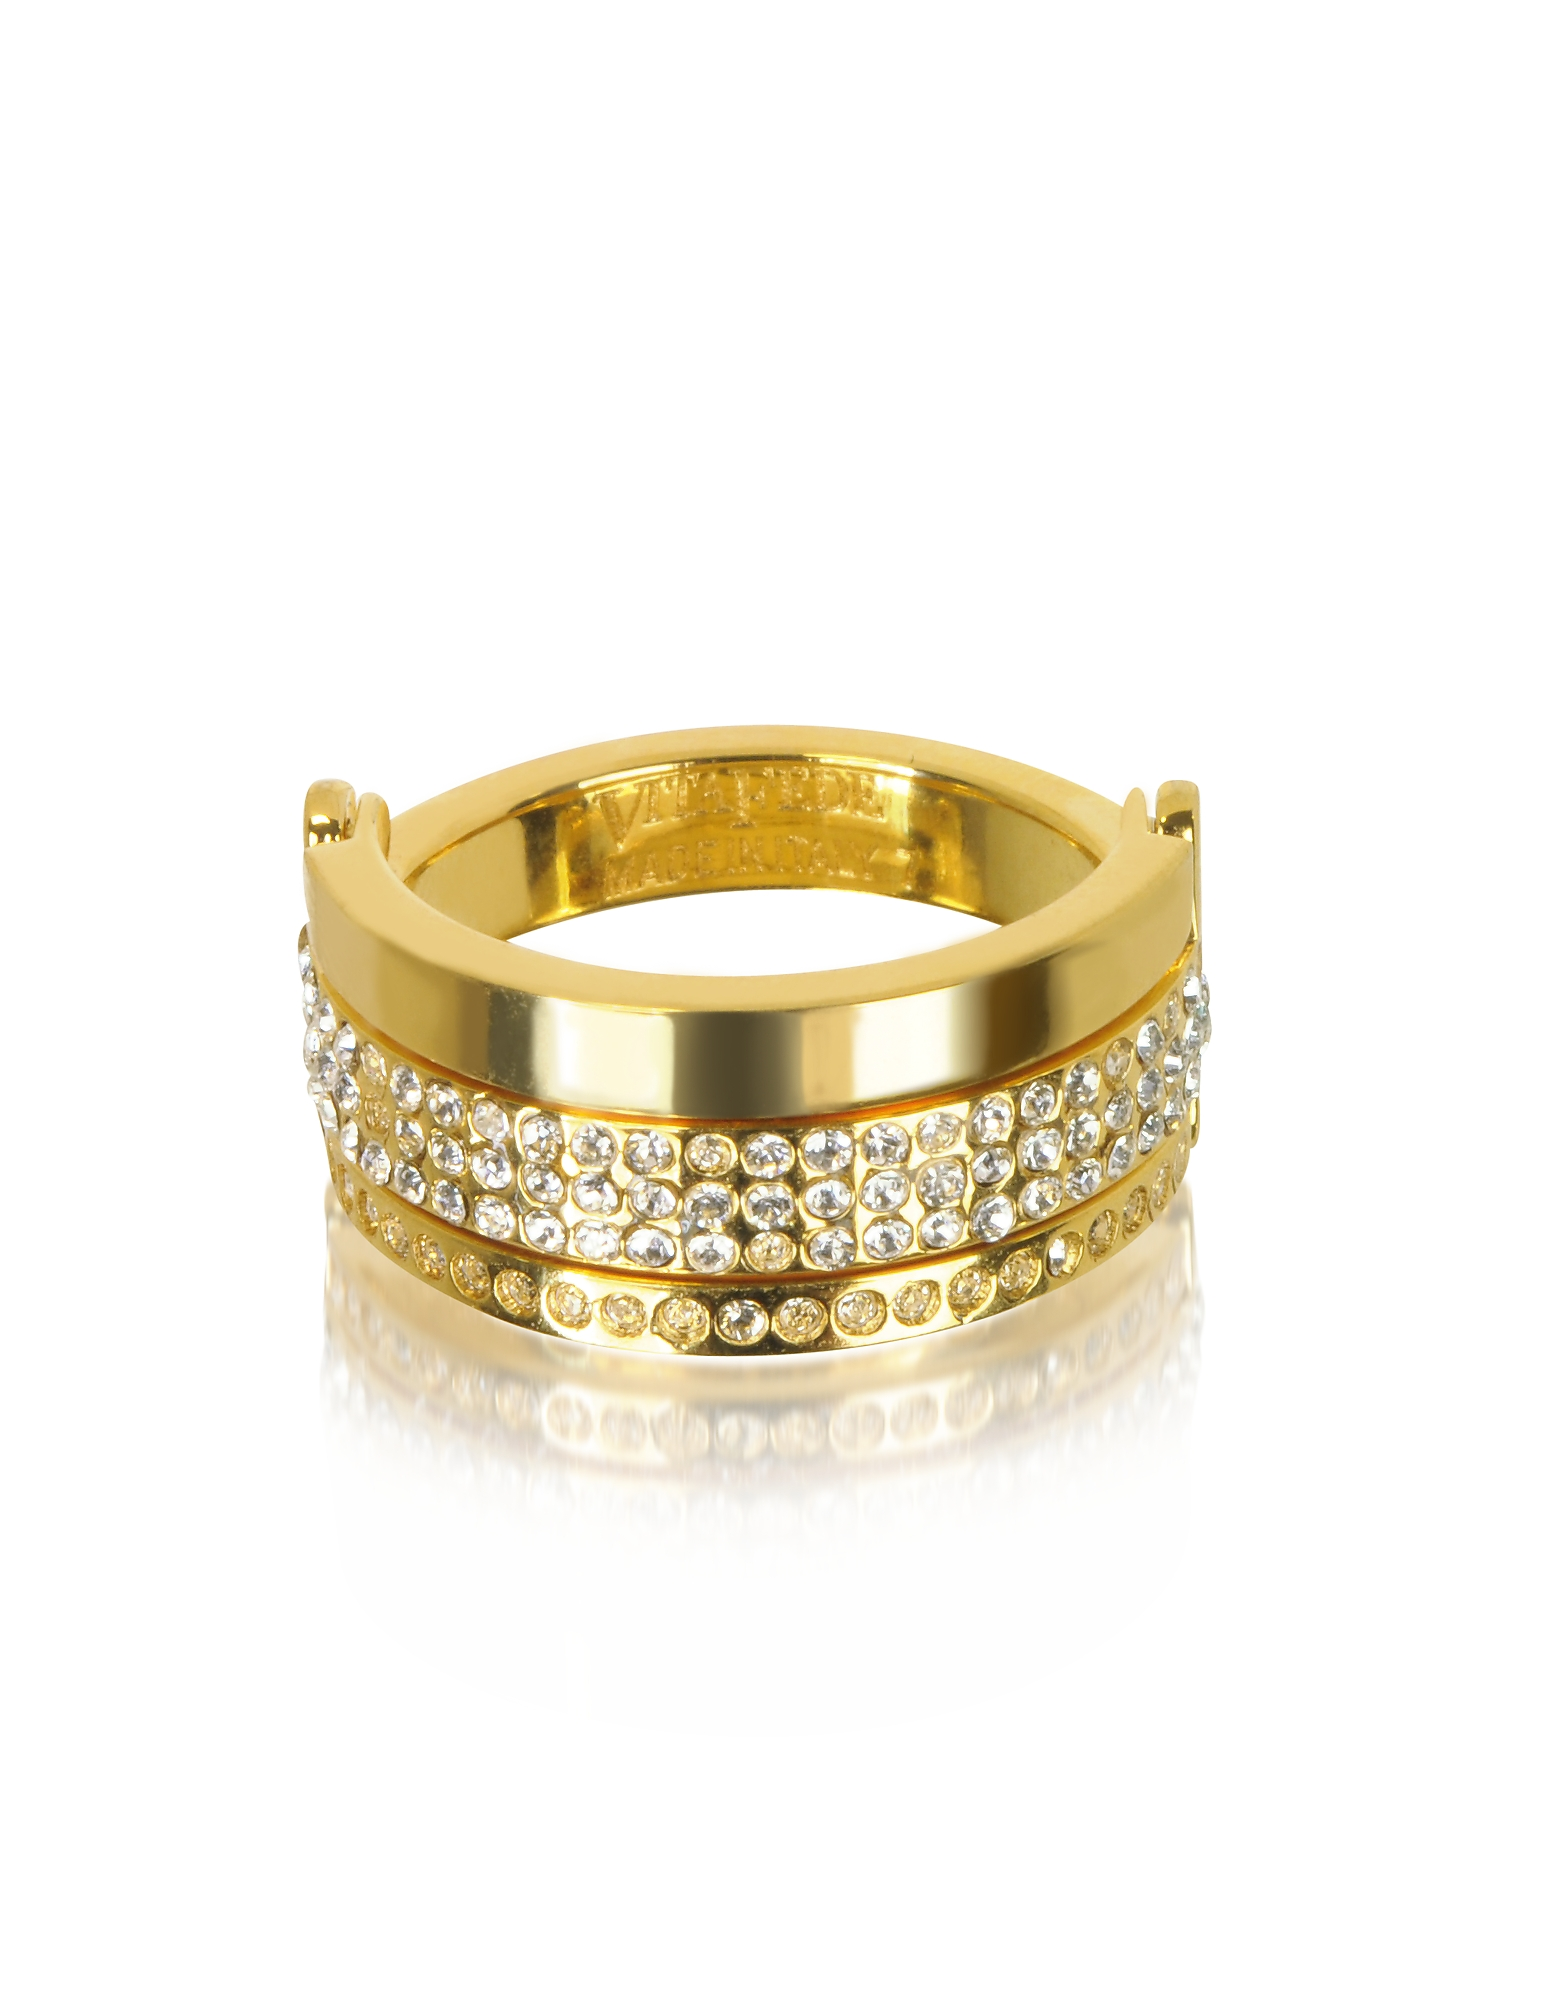 Bardot Gold Tone Ring w/Crystals